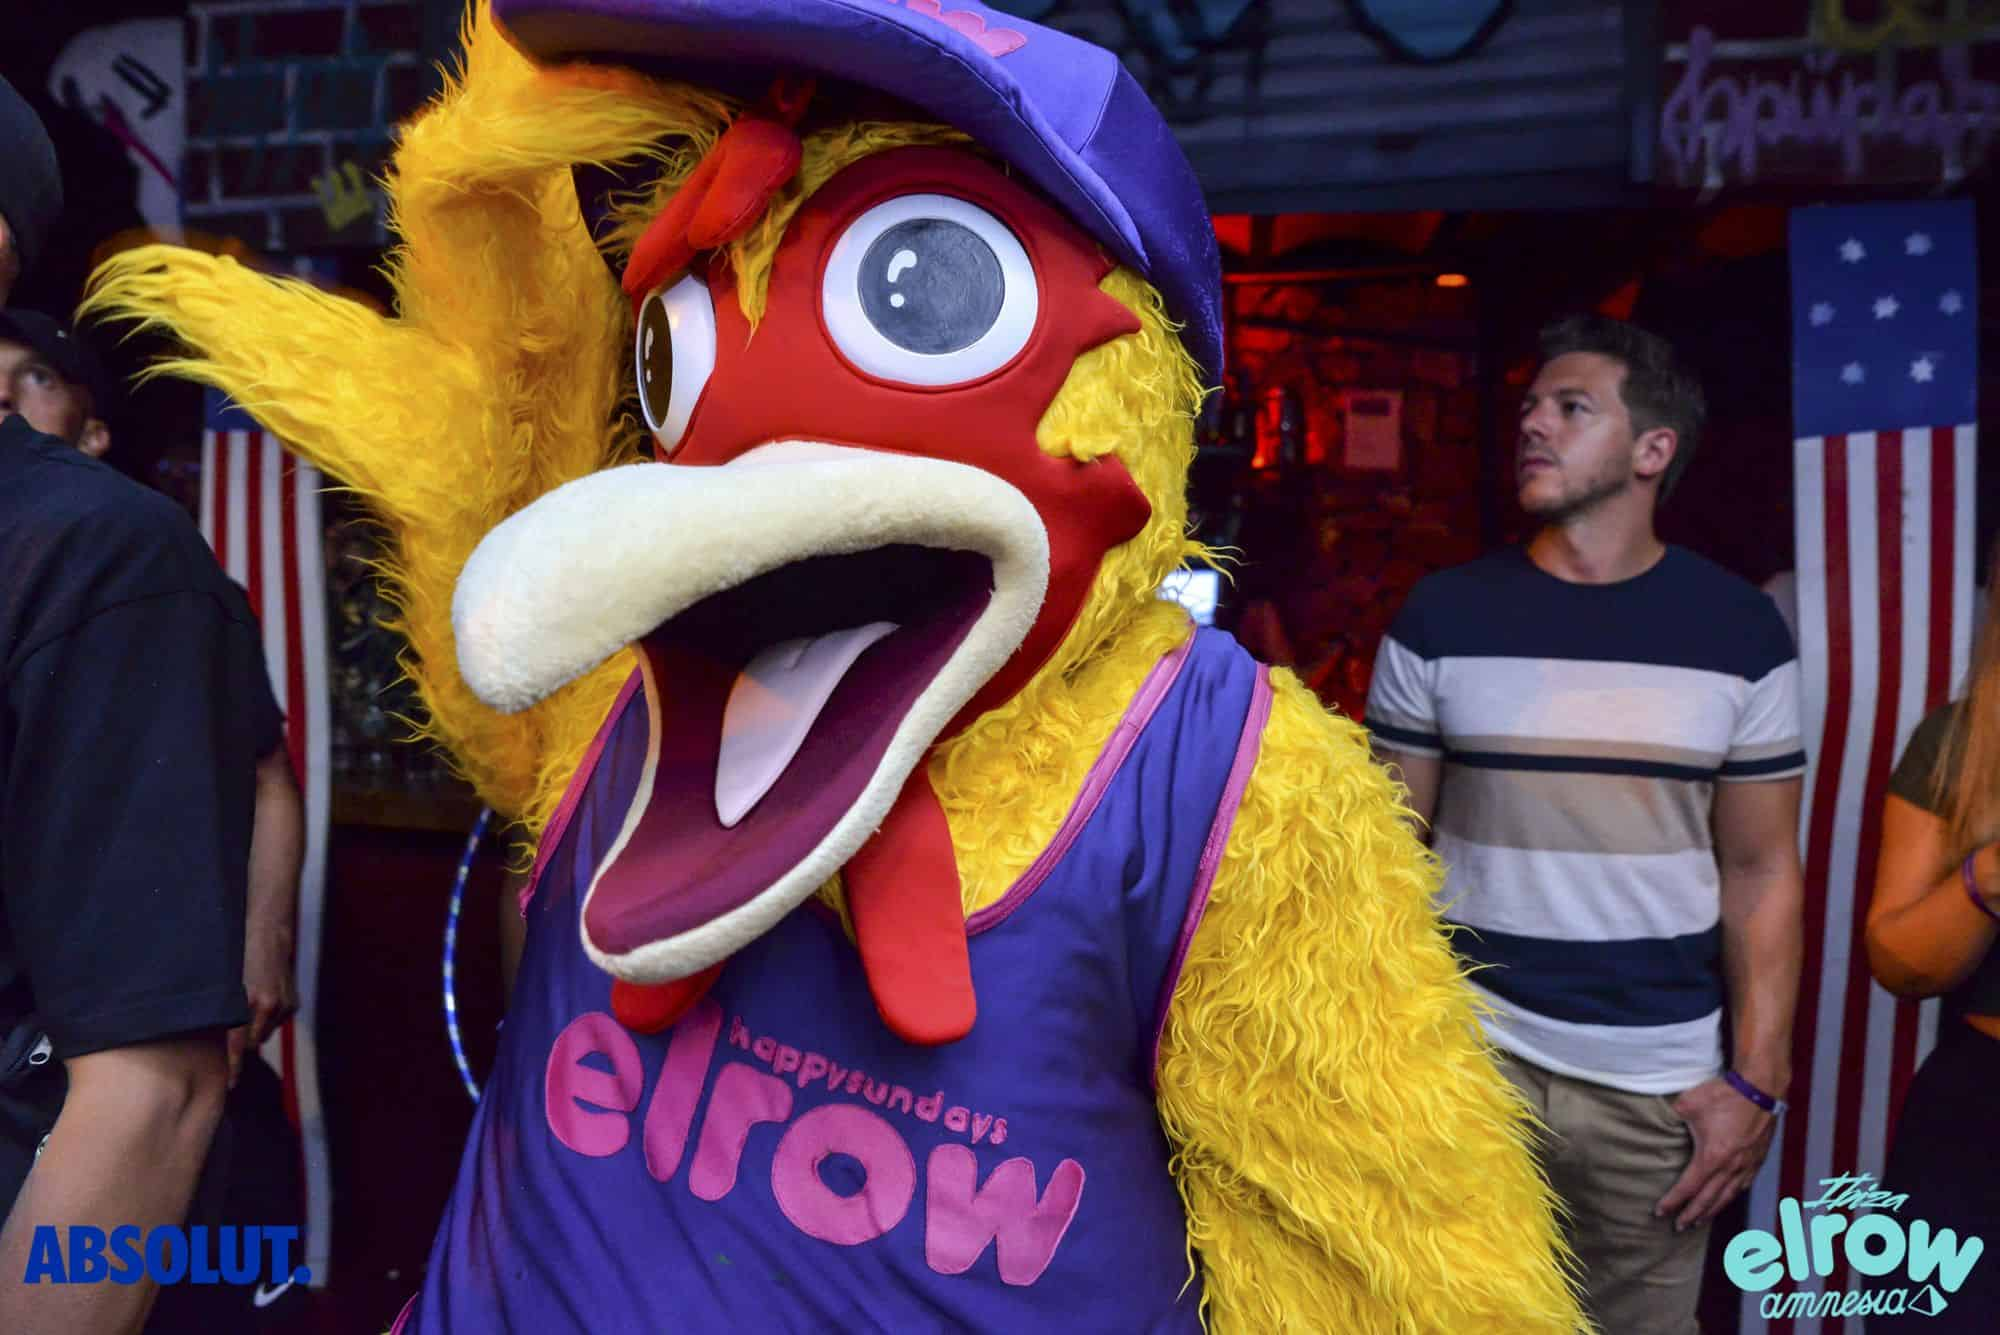 Elrow Ibiza 2019 - Tickets, Events and Lineup 2